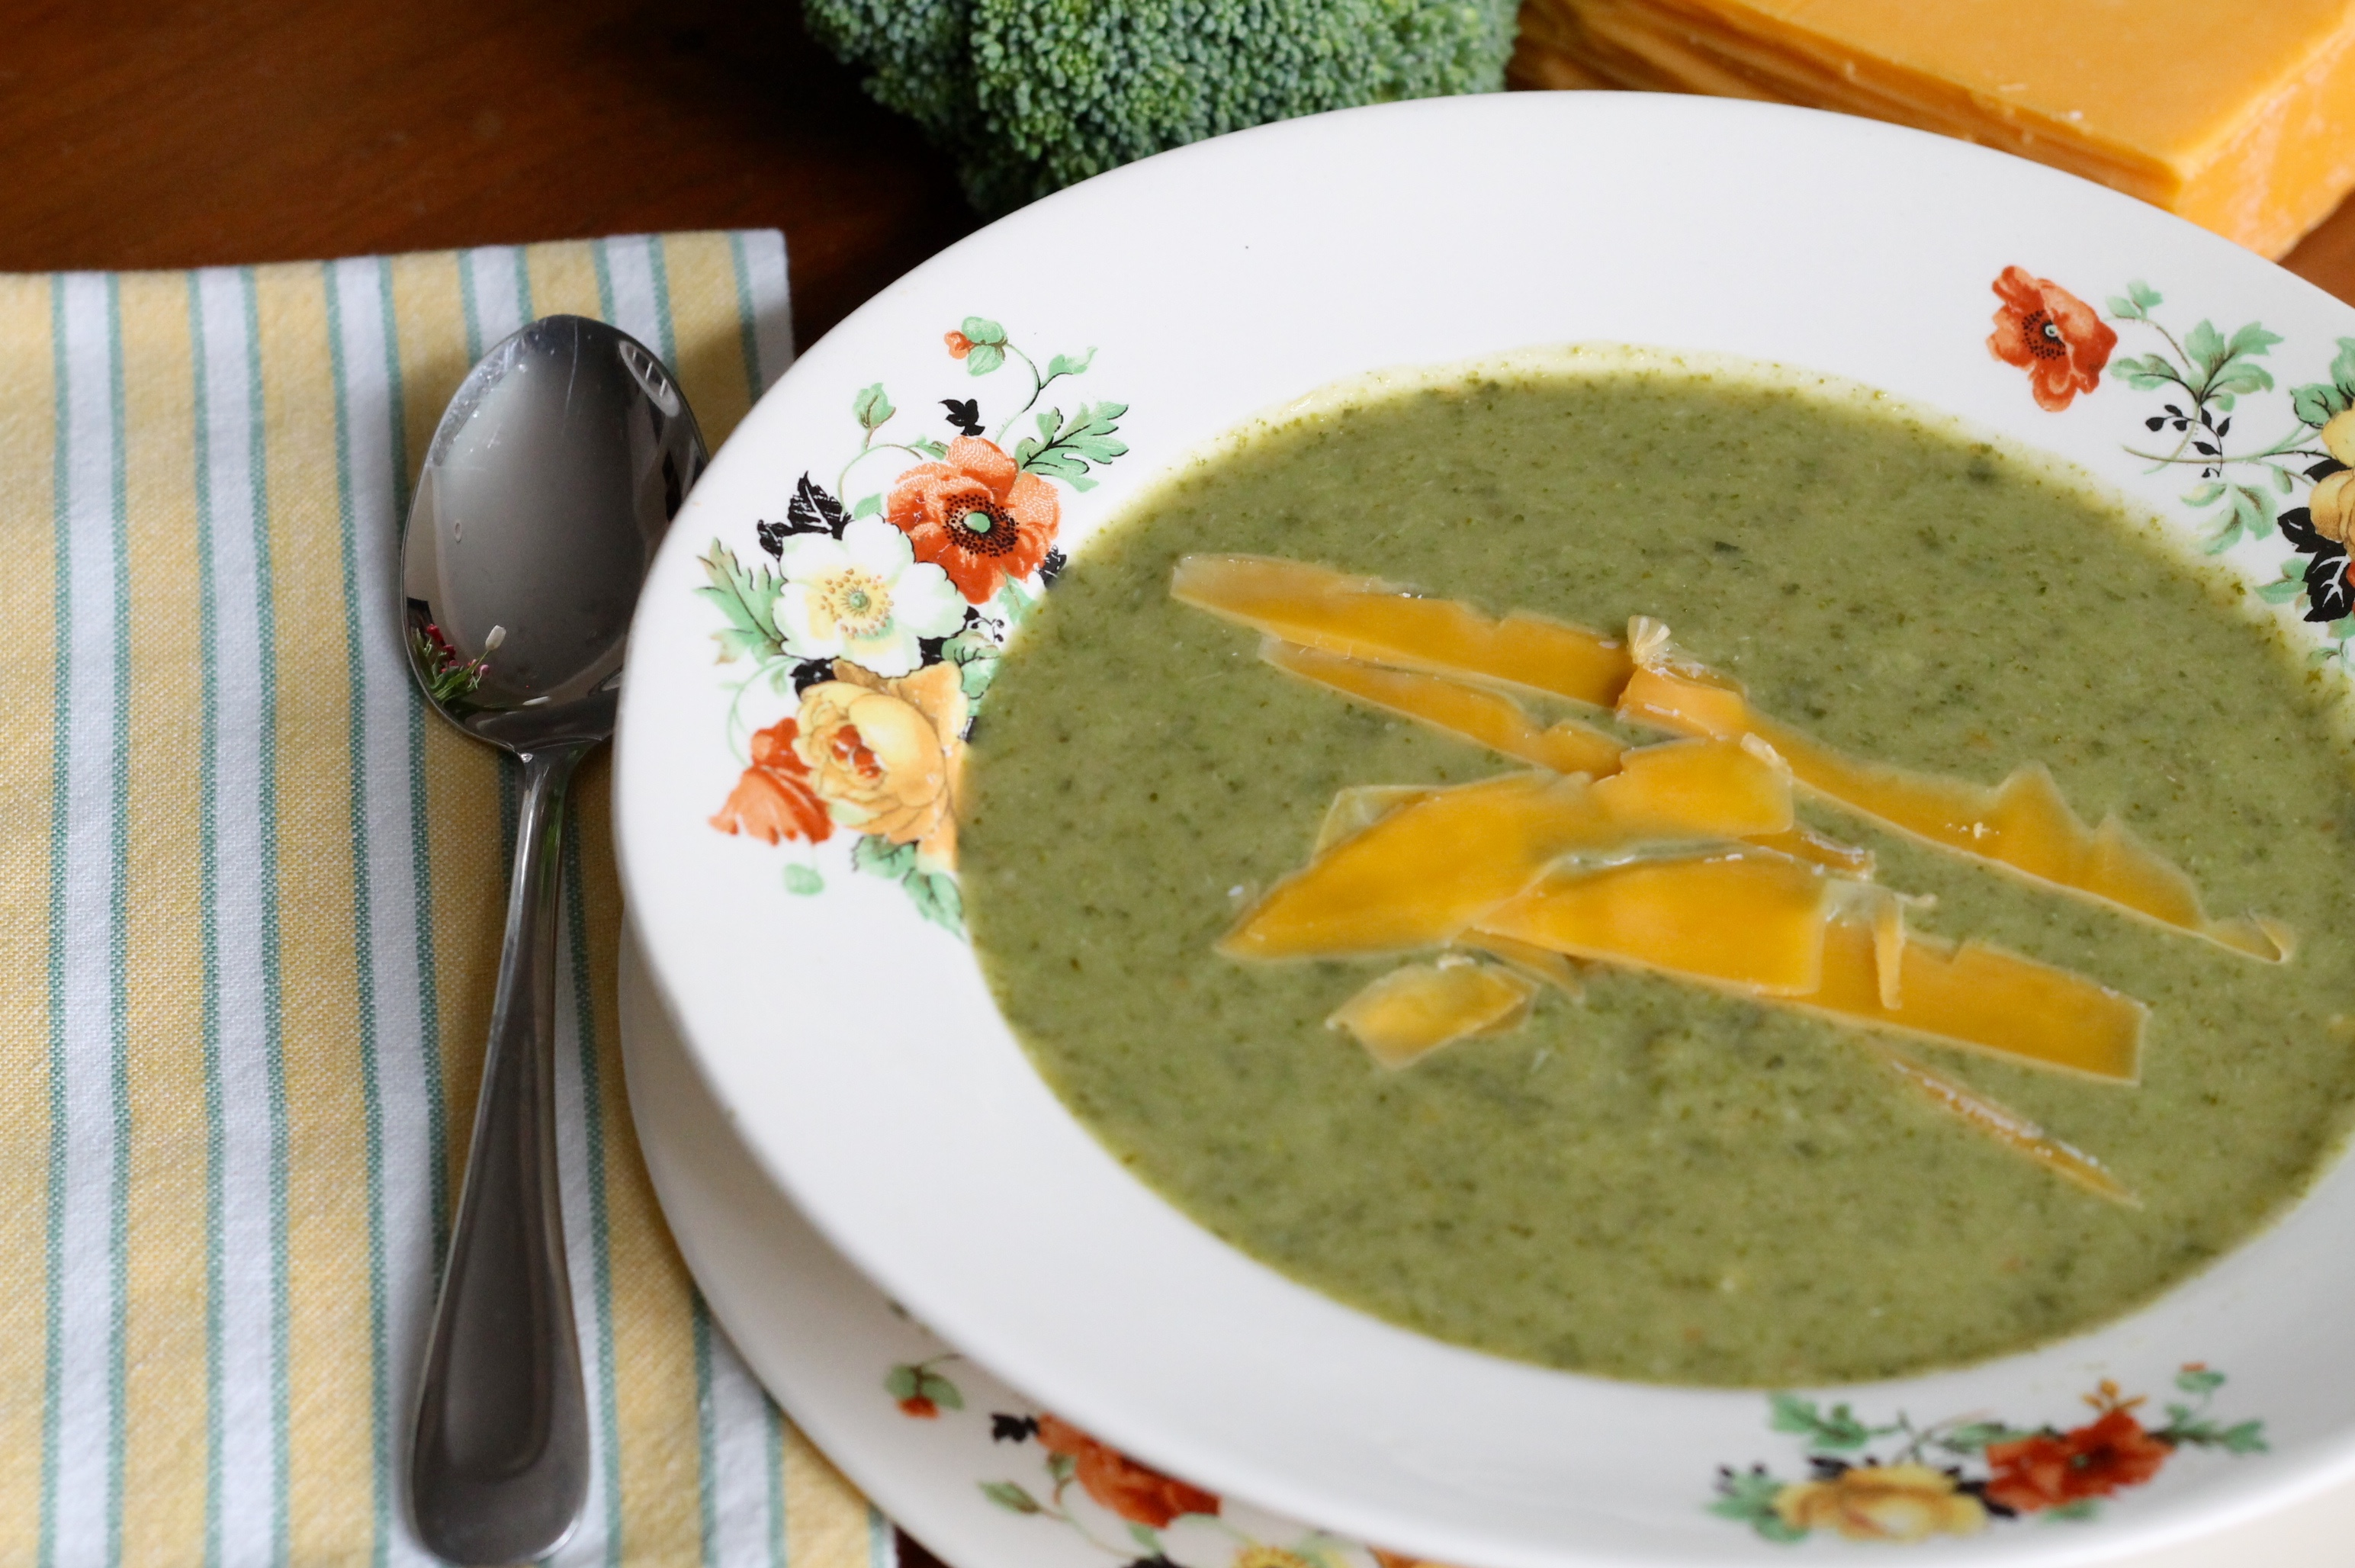 Broccoli Cheddar soup - The 2 Seasons